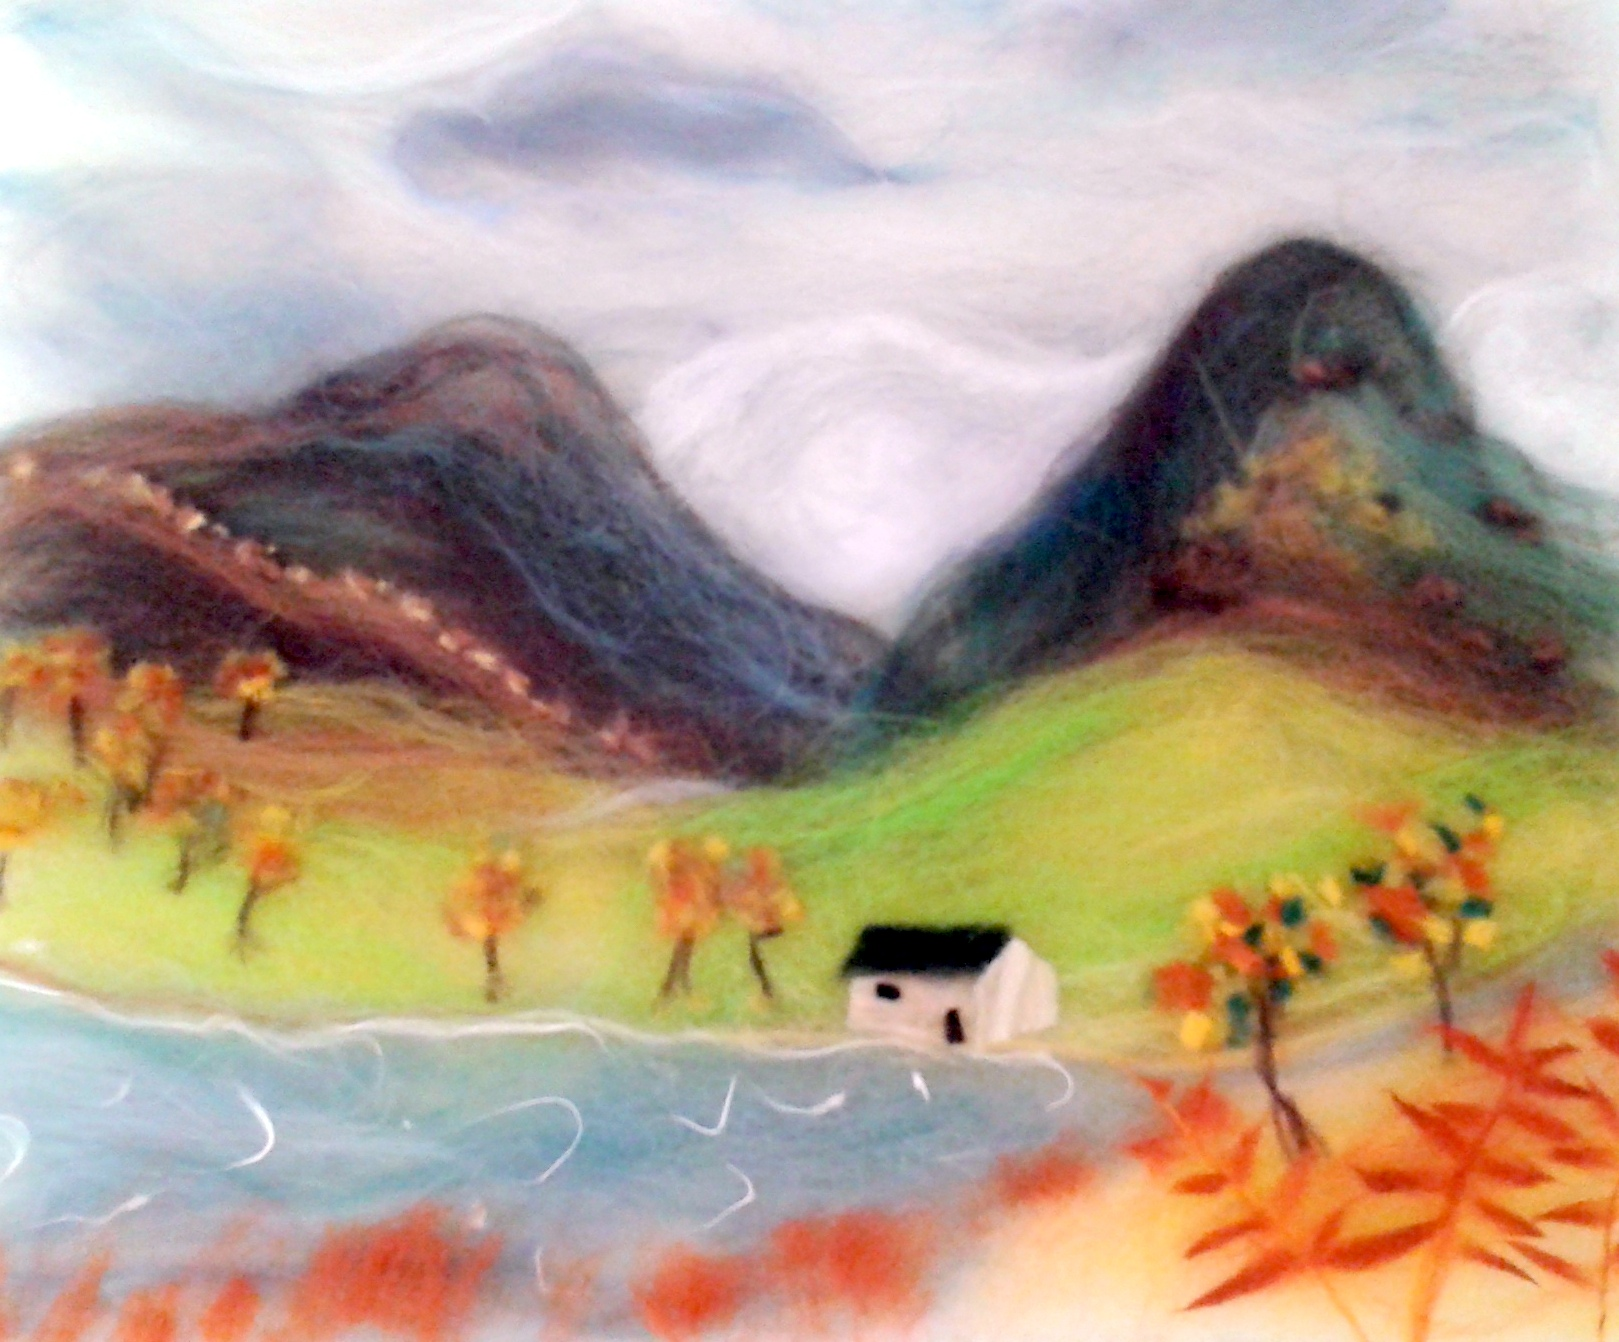 'Lake district landscape' wool painting created by Karen at Magic Wool Art and Craft Studio